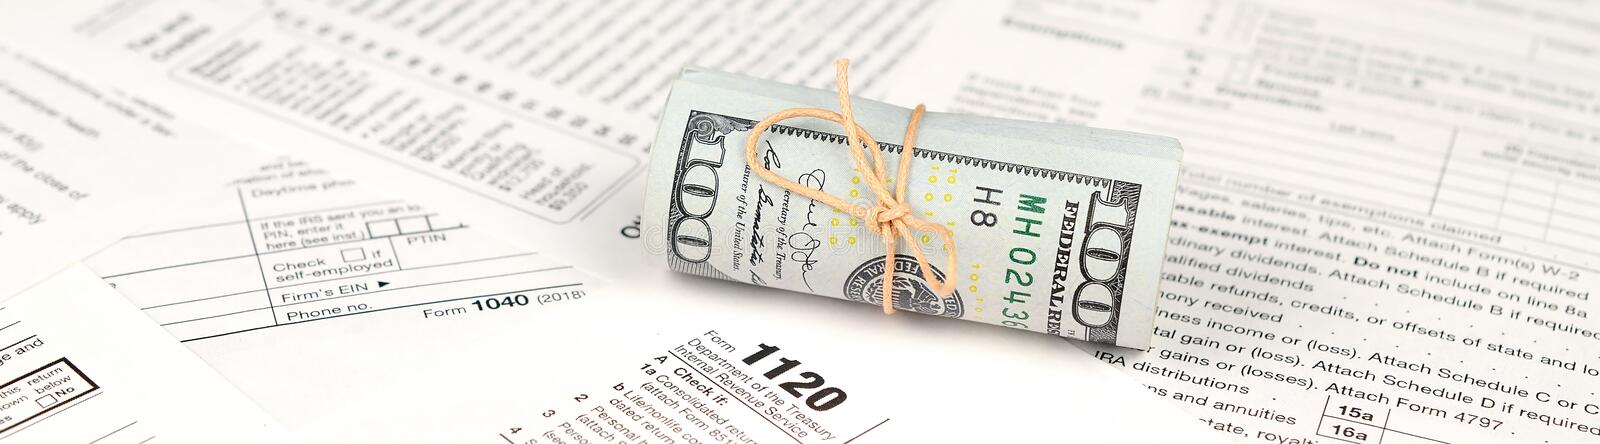 1120 U.S. Corporation income tax return form with roll of american dollar banknotes stock photo